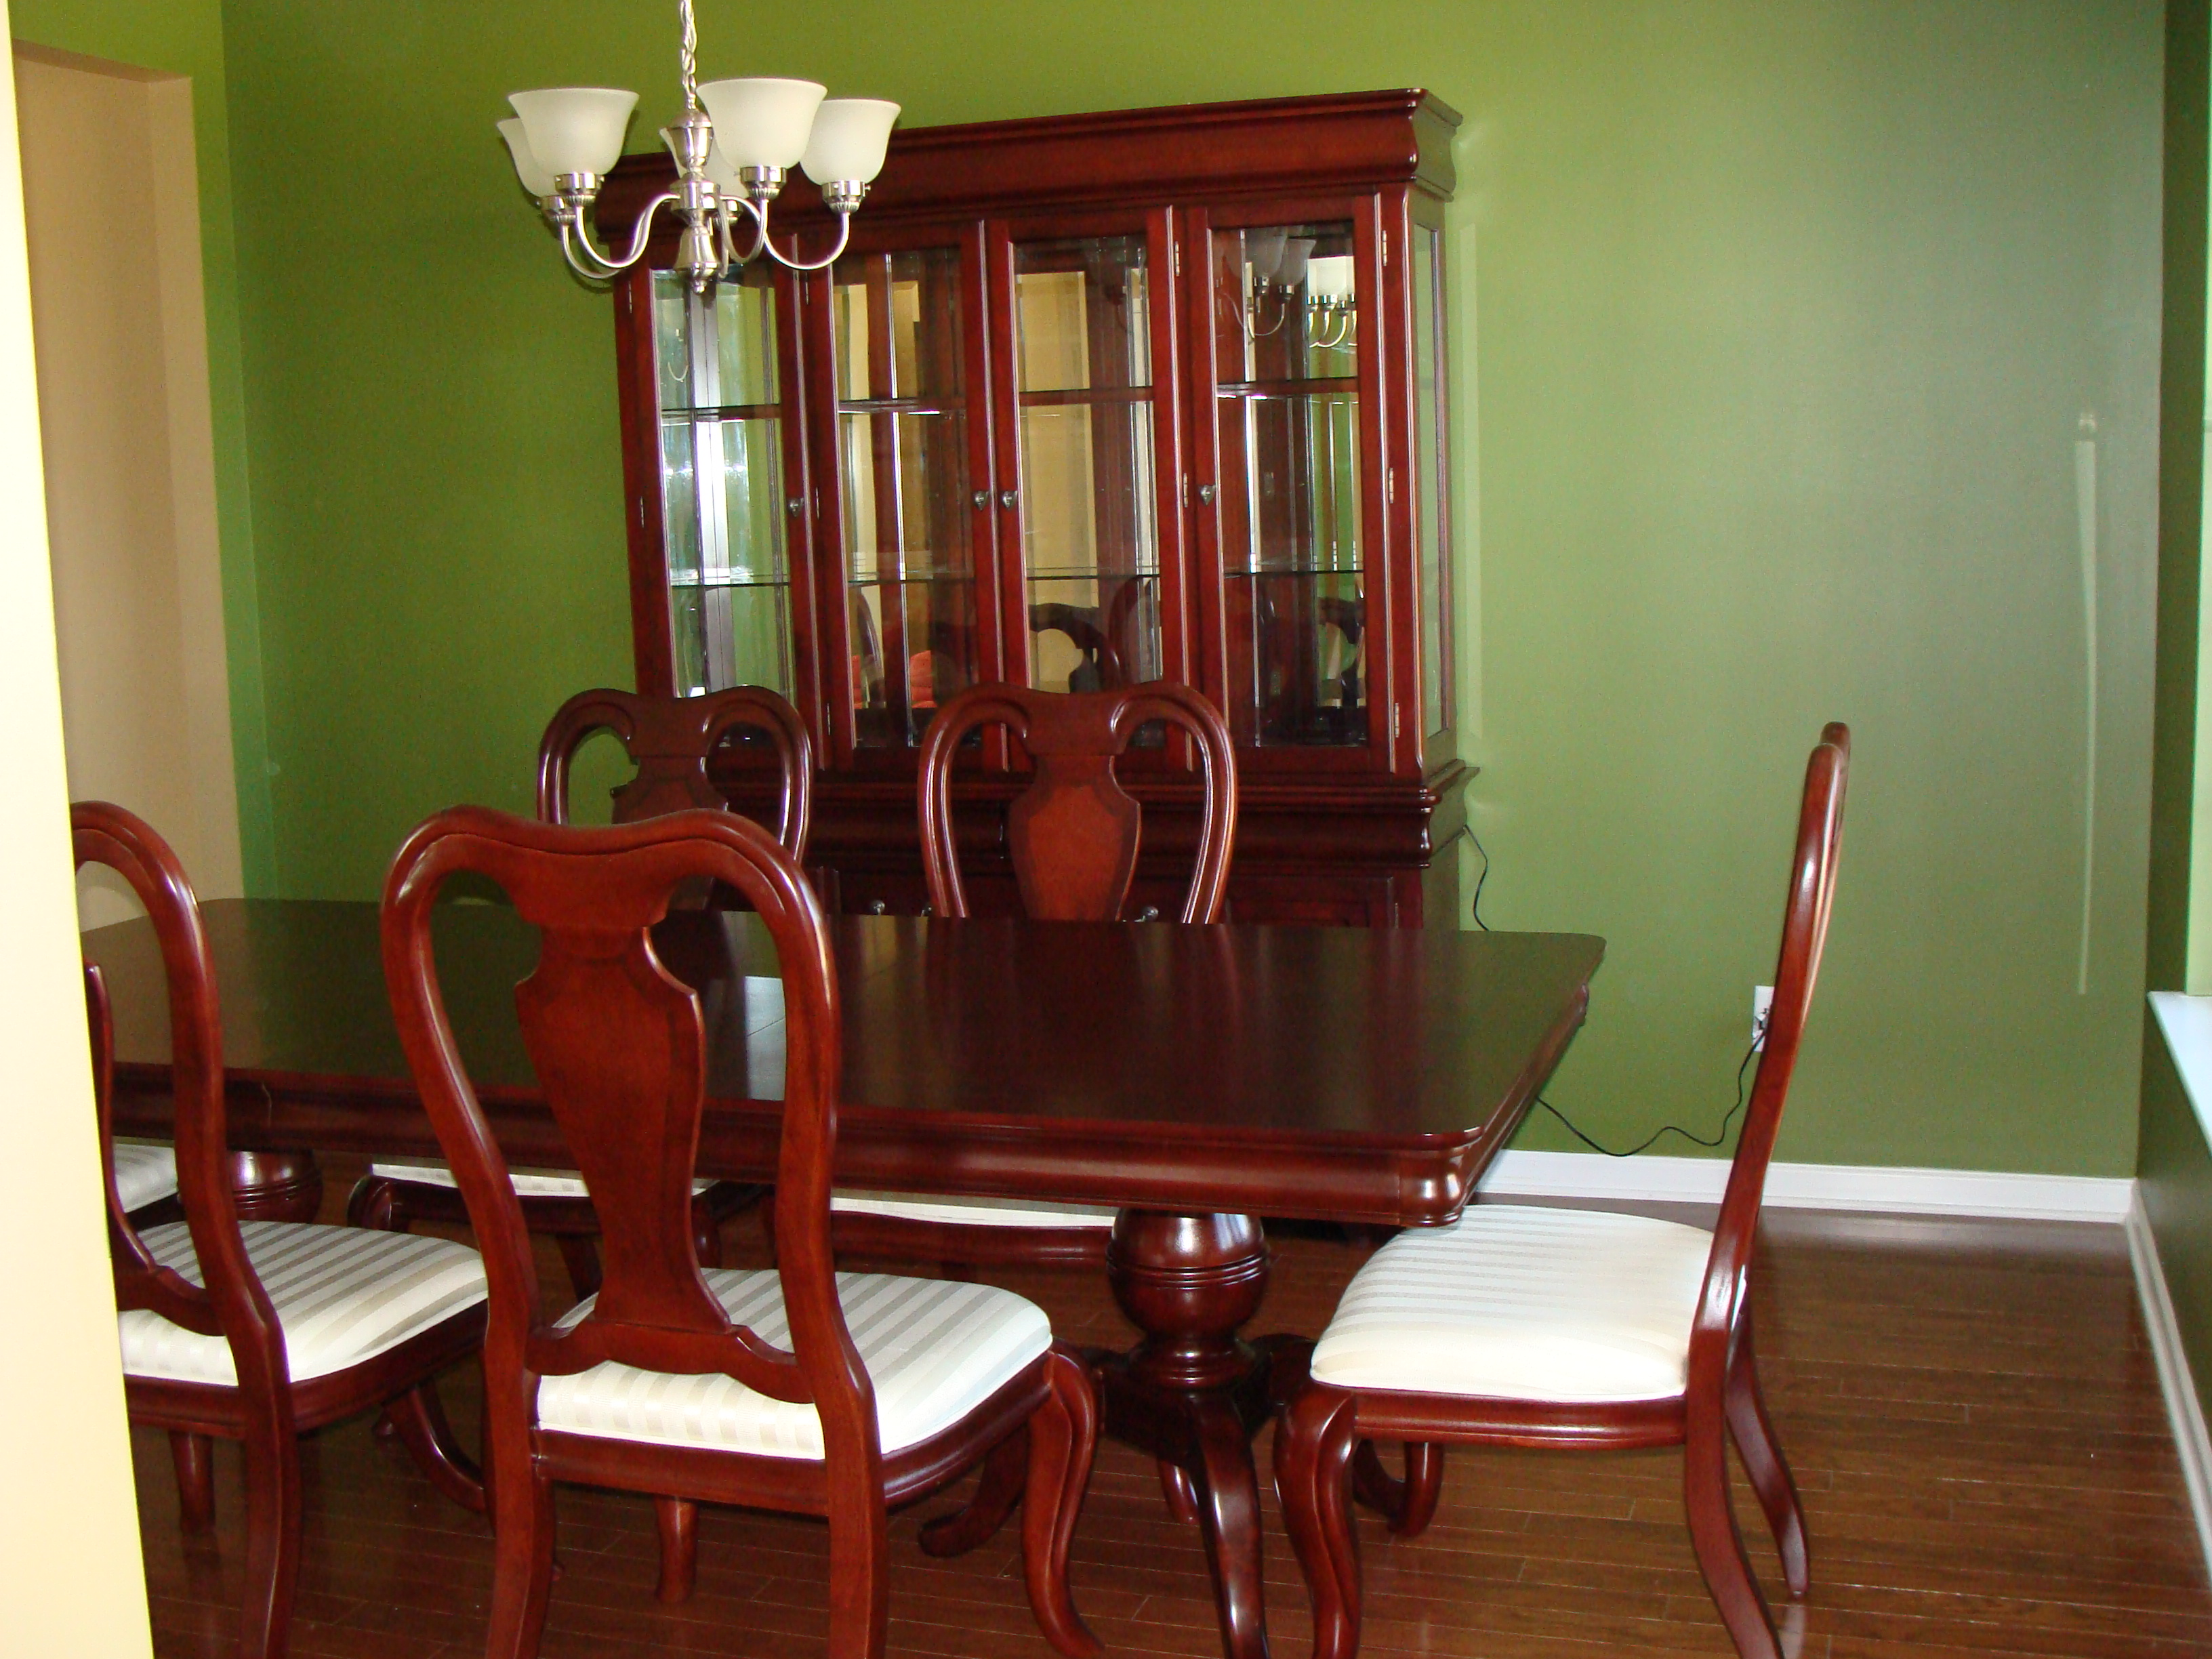 Inspirational pale green dining room chairs light of dining room - Pale green dining room ...